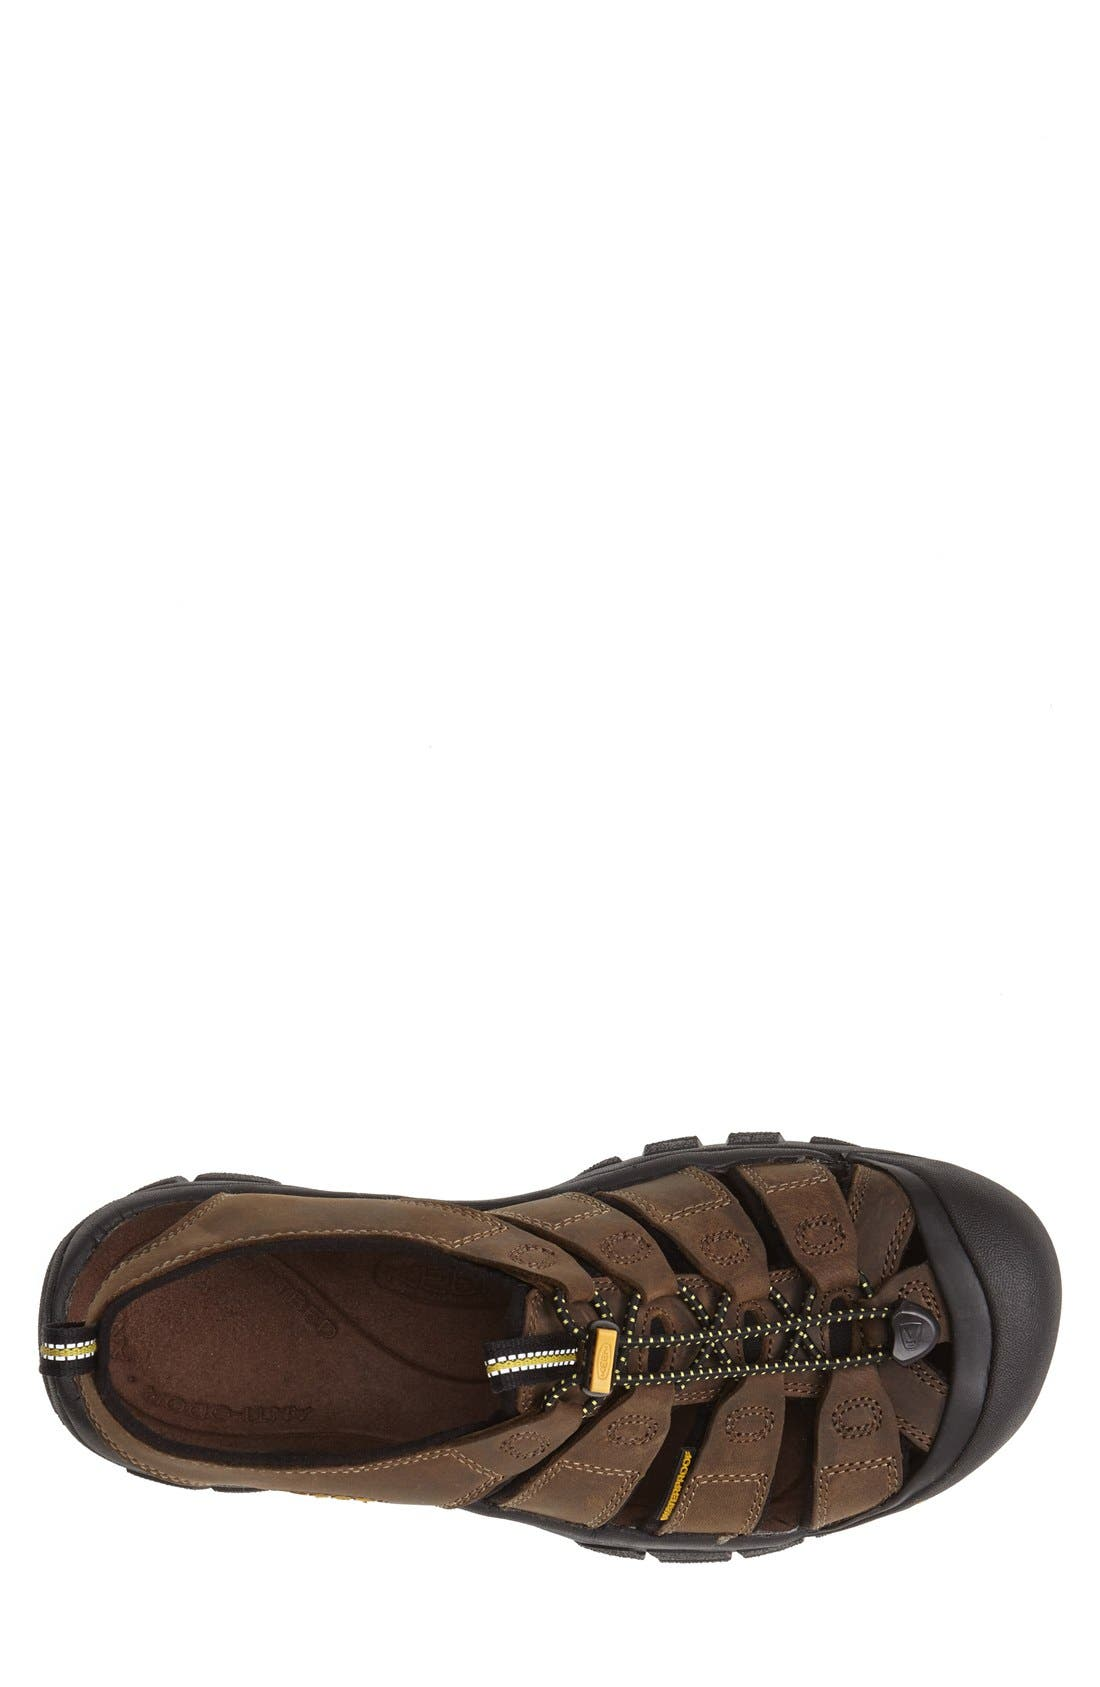 Alternate Image 3  - Keen 'Newport' Sandal (Men)